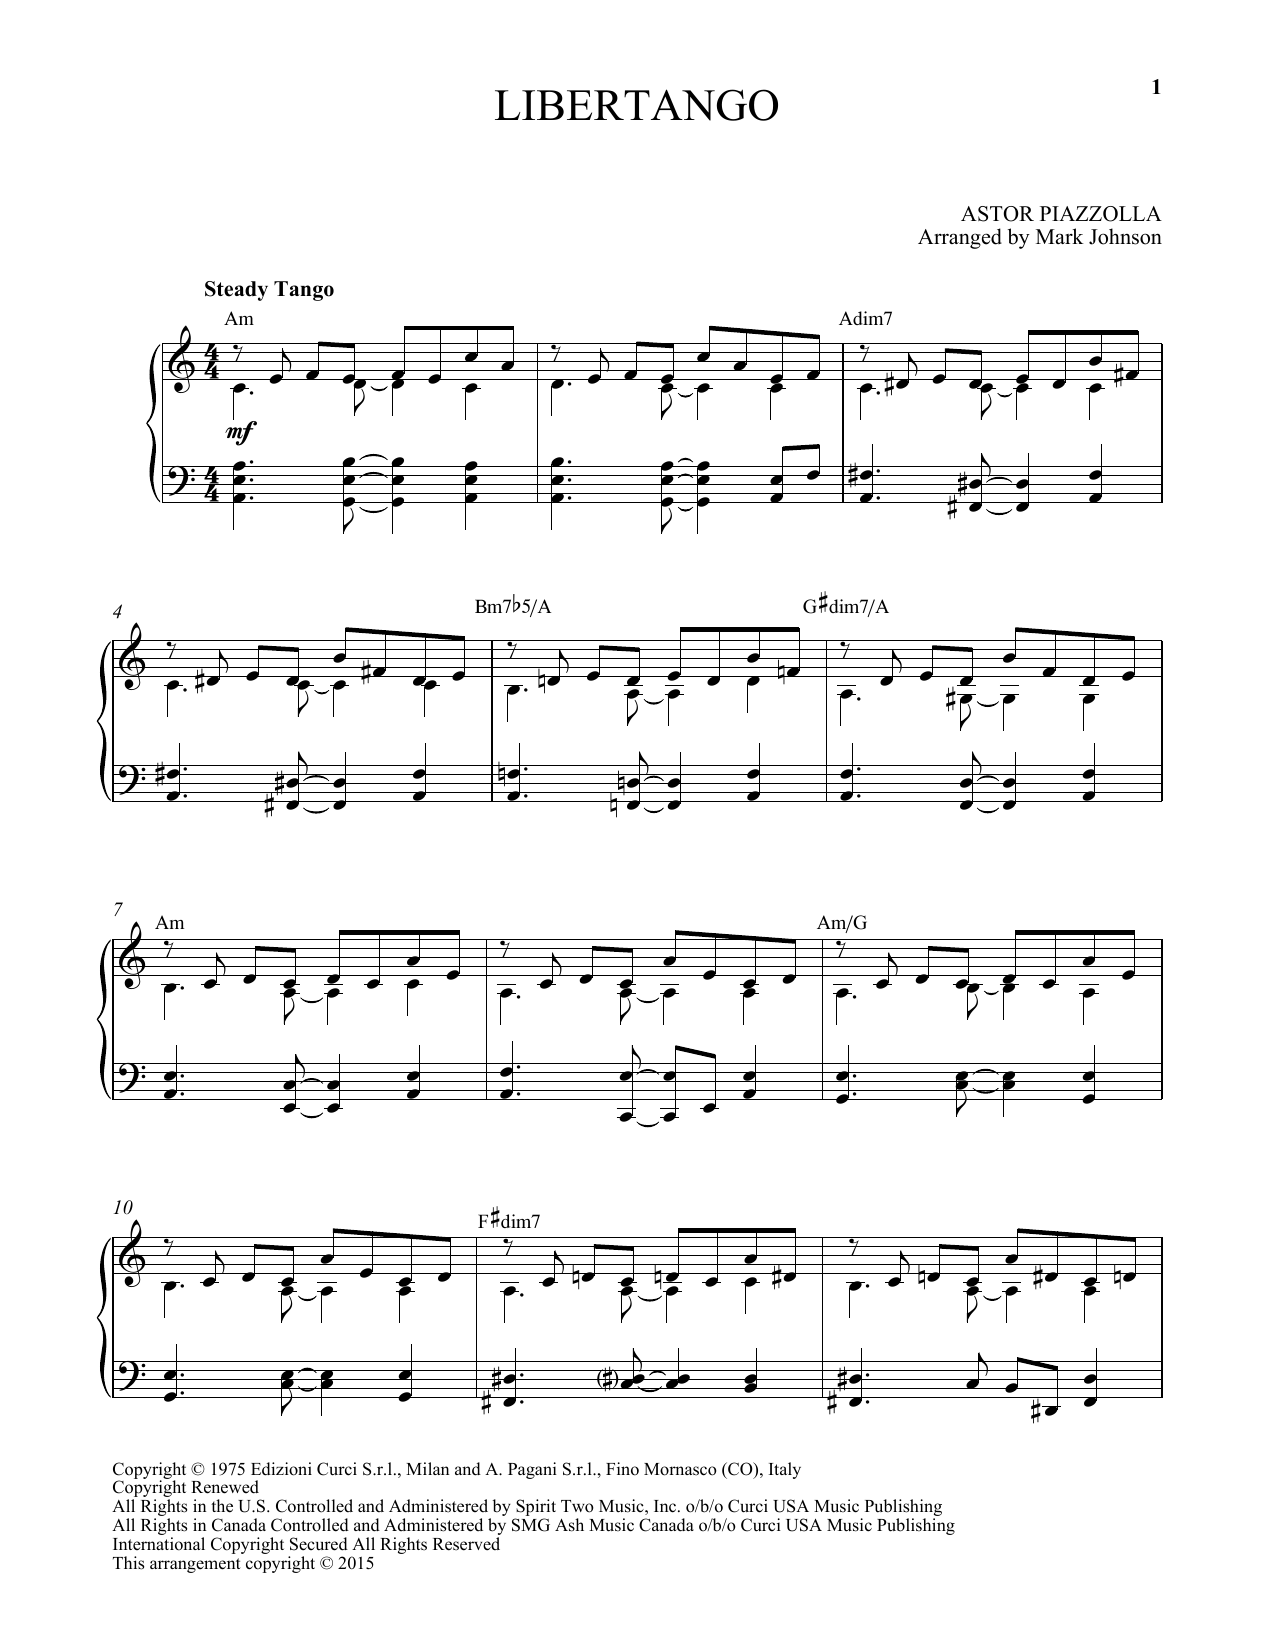 Astor Piazzolla Libertango sheet music notes and chords. Download Printable PDF.